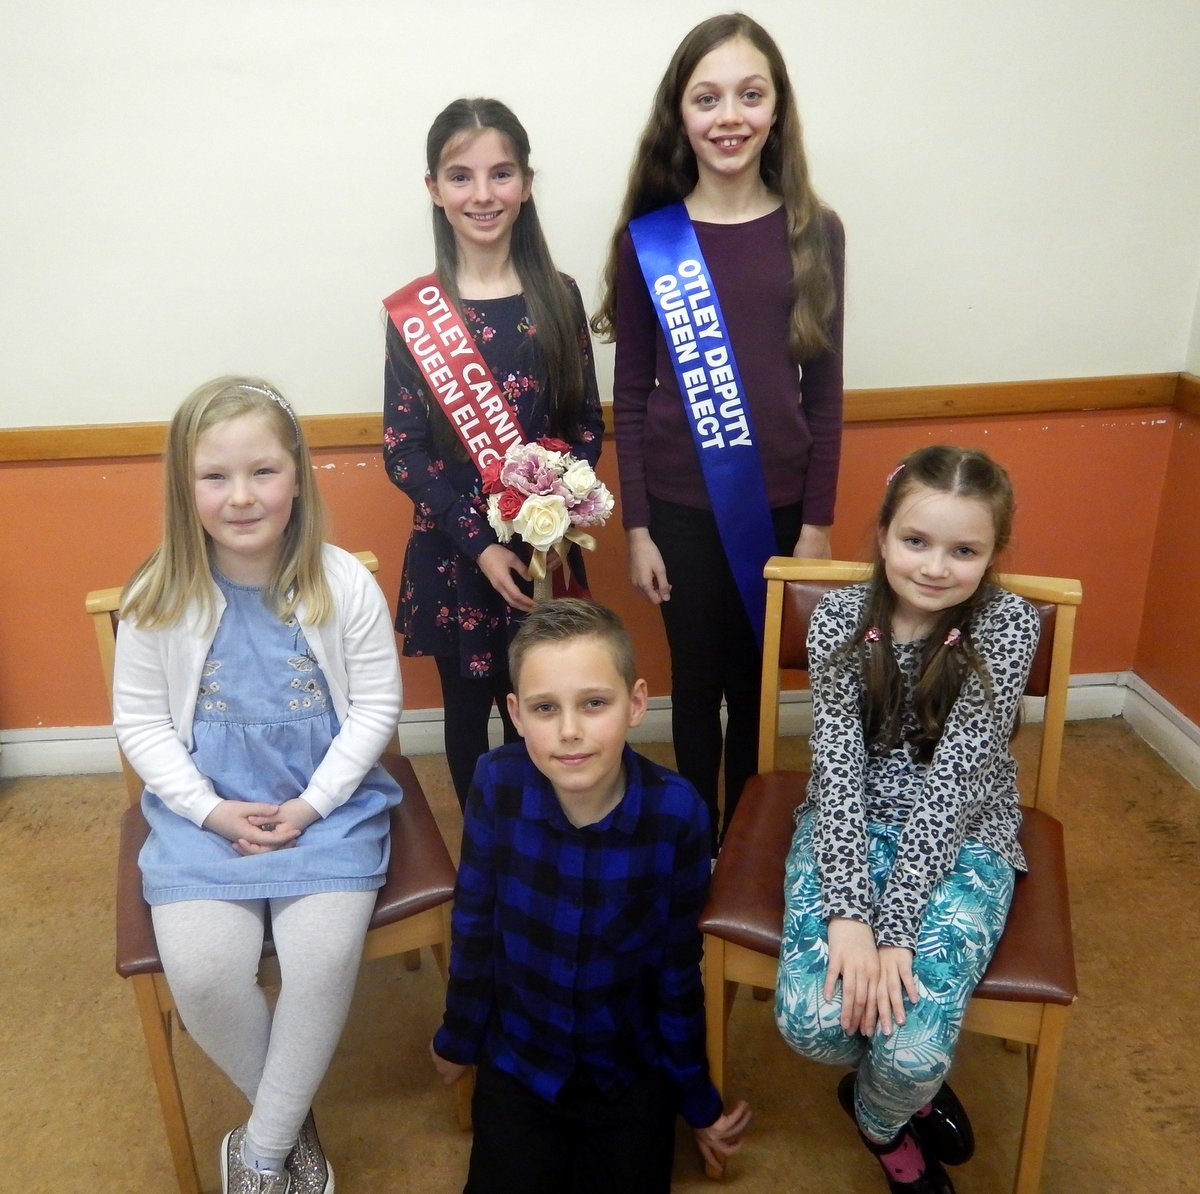 Otley Carnival Queen Elect Niamh Emmett Casey and her team